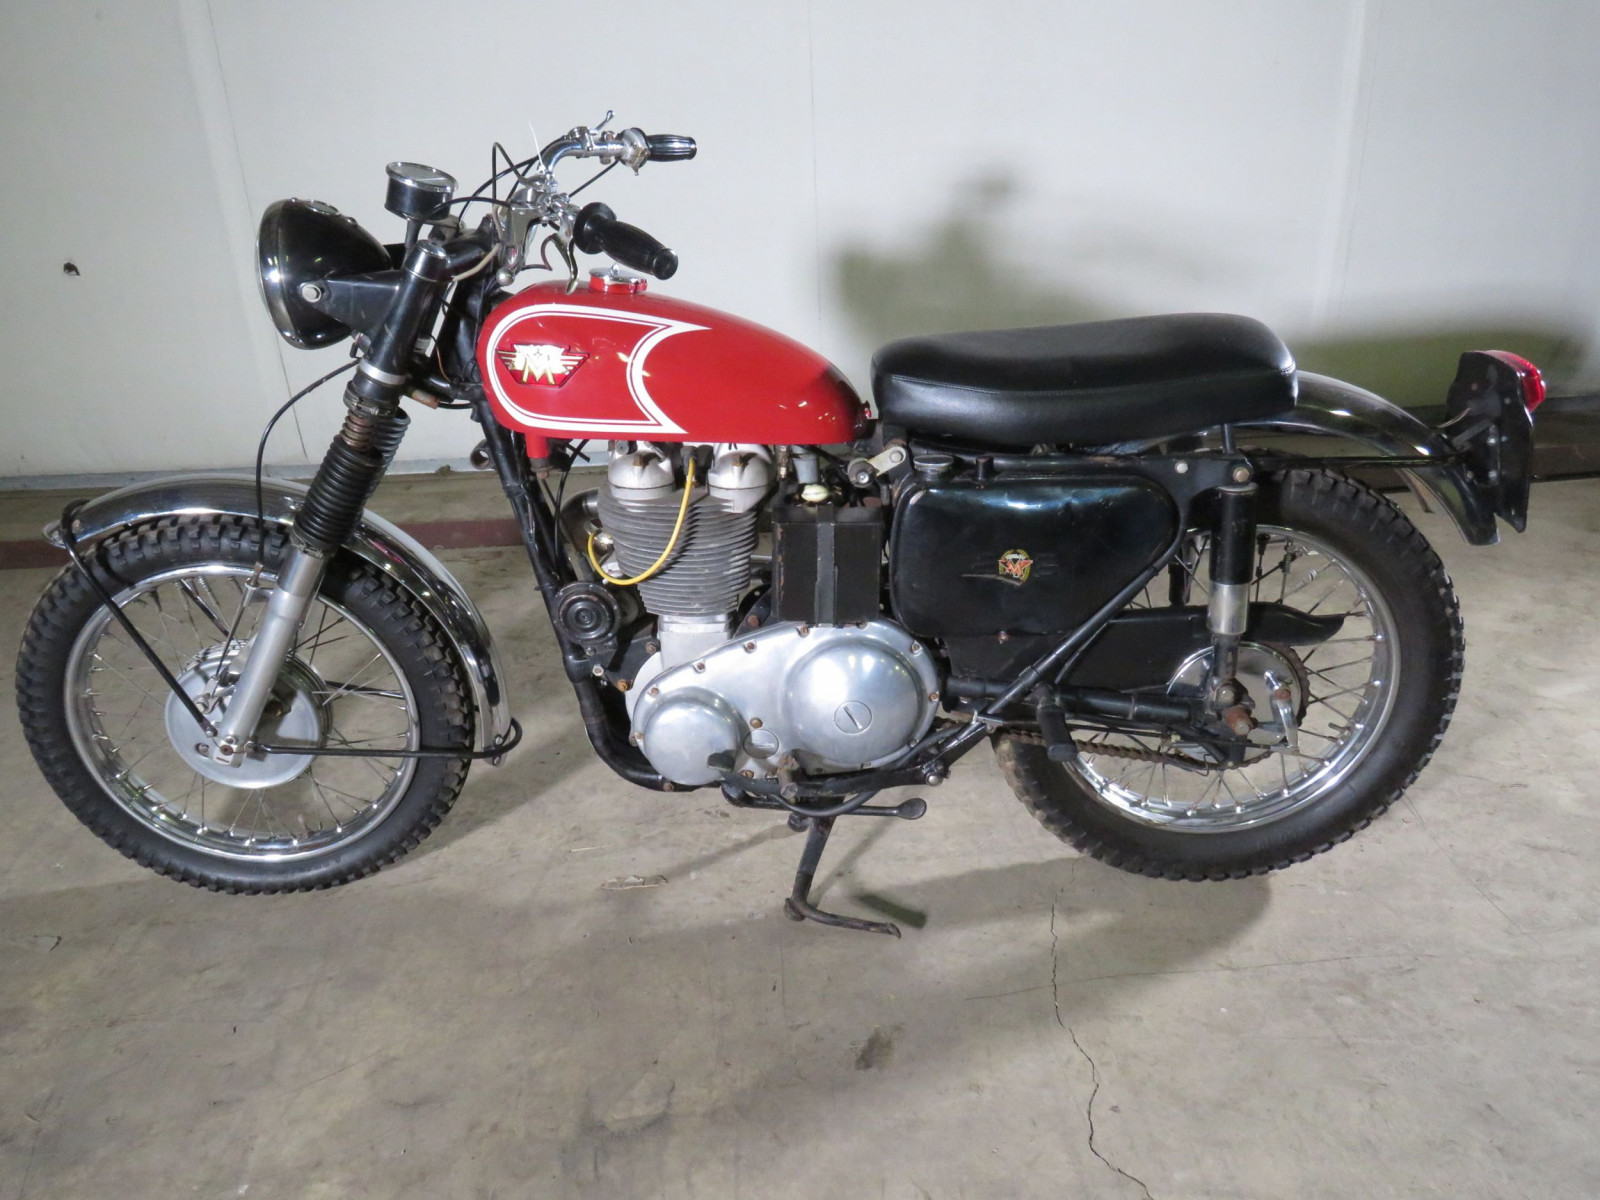 1967 Matchless G80 Competition Scrambler Motorcycle - Image 1